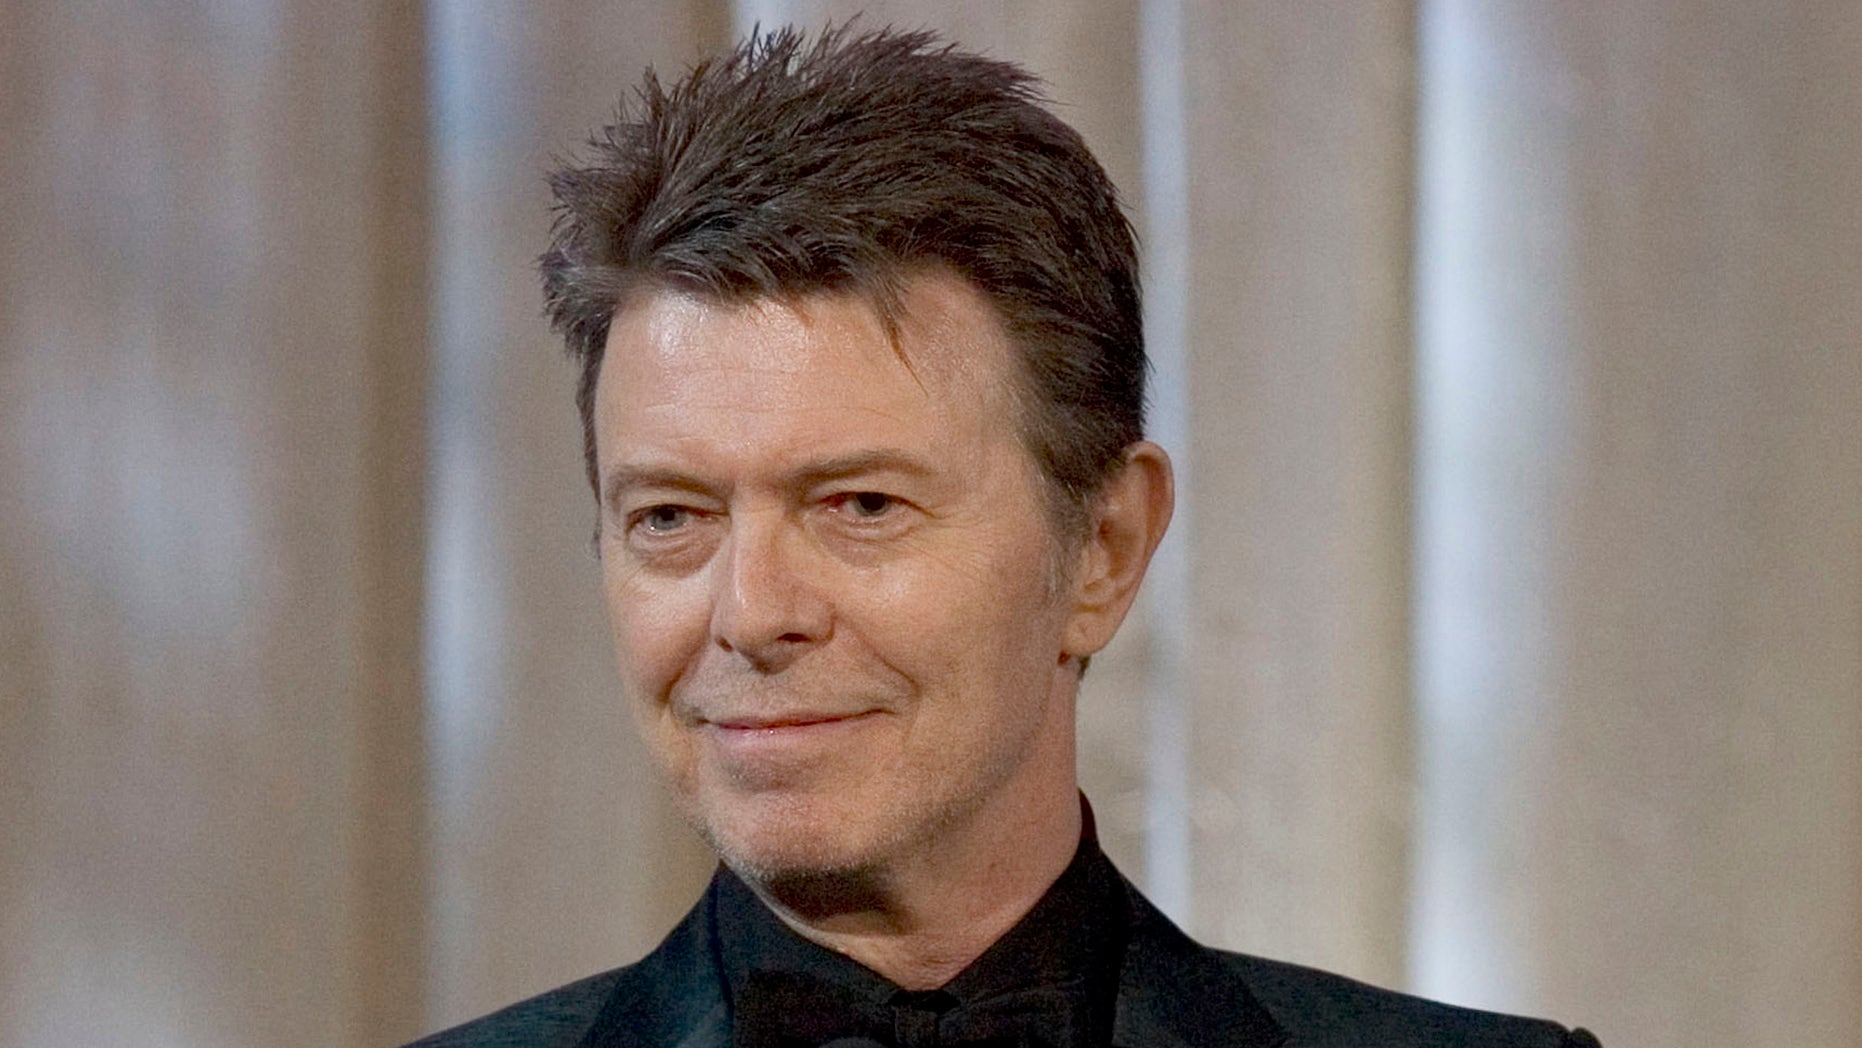 June 5, 2007.  David Bowie attends an awards show in New York.